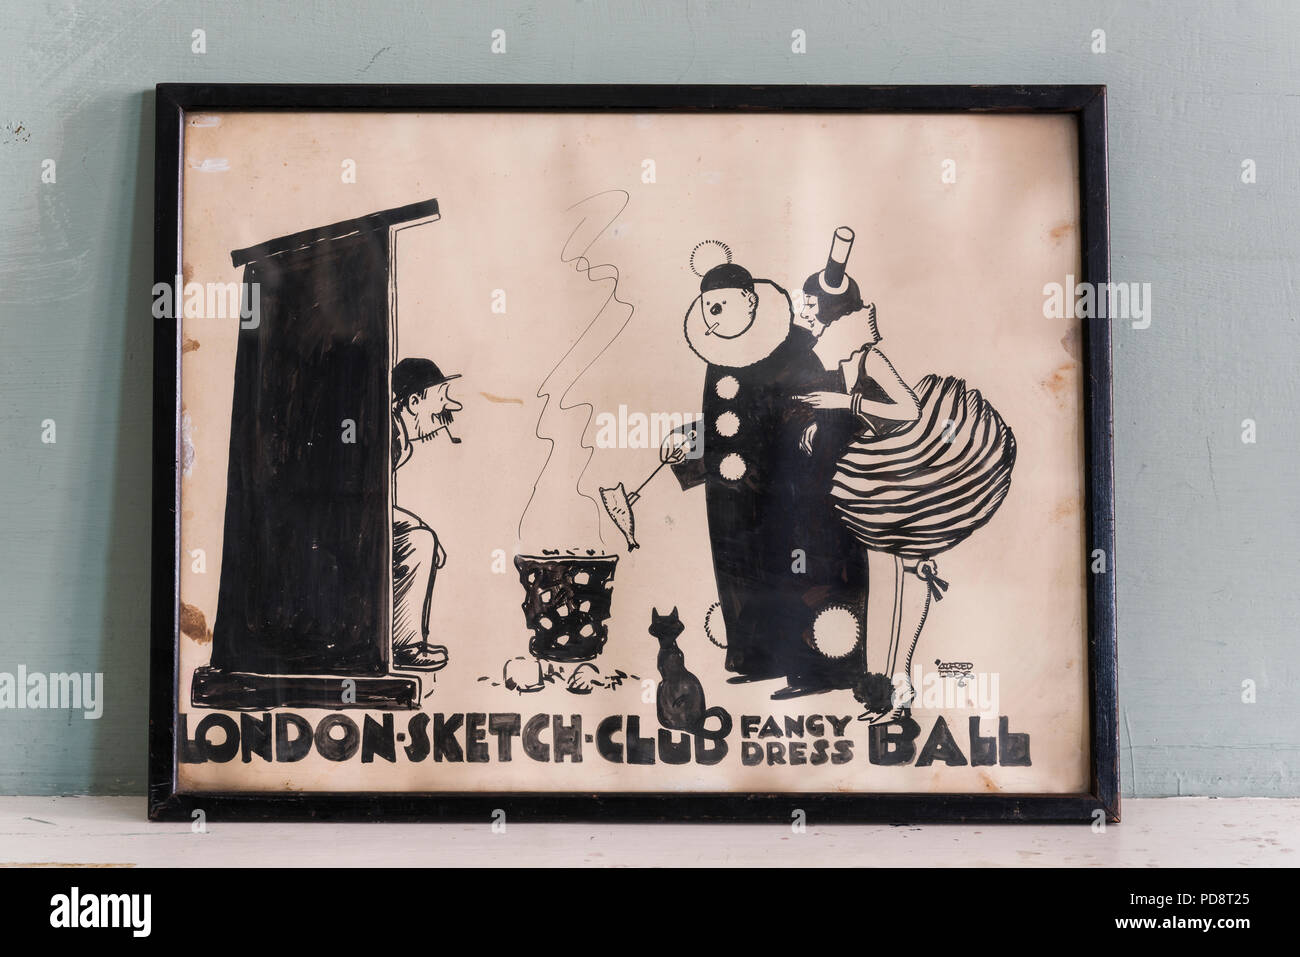 Framed invitation to a party at London's Sketch Club - Stock Image